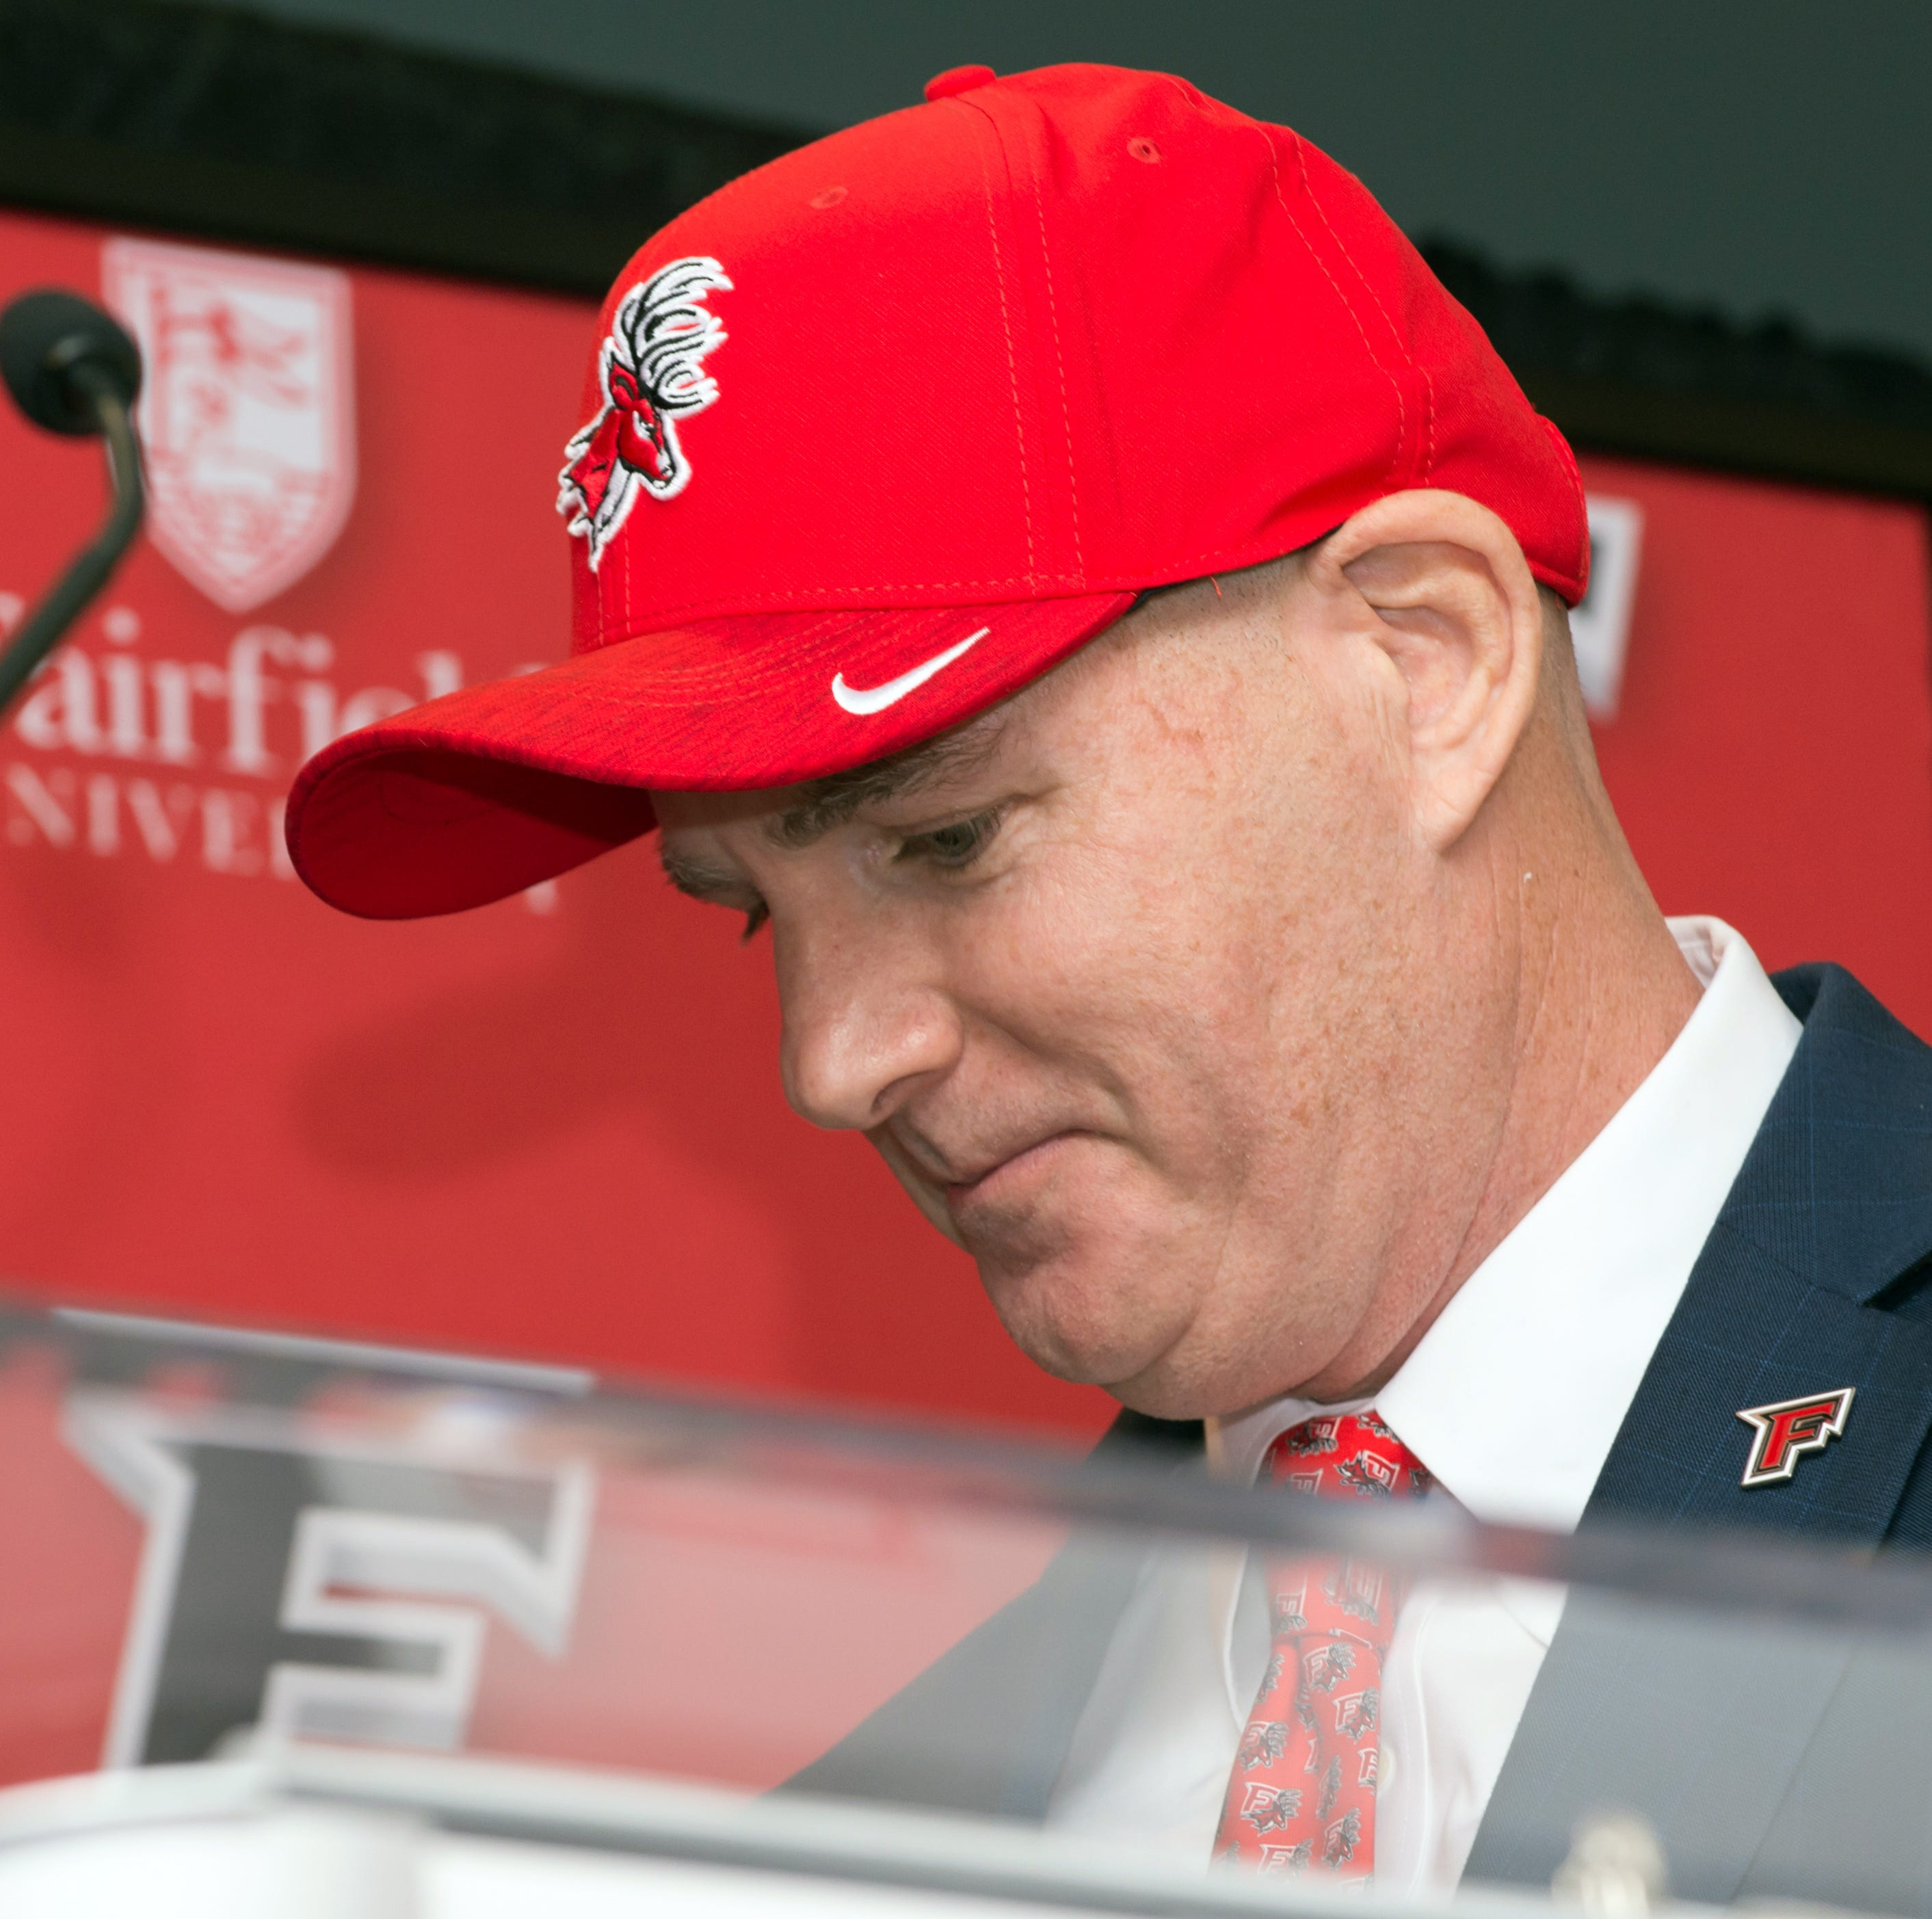 With Steve Pikiell's blueprint in hand, Jay Young ready to revive Fairfield basketball